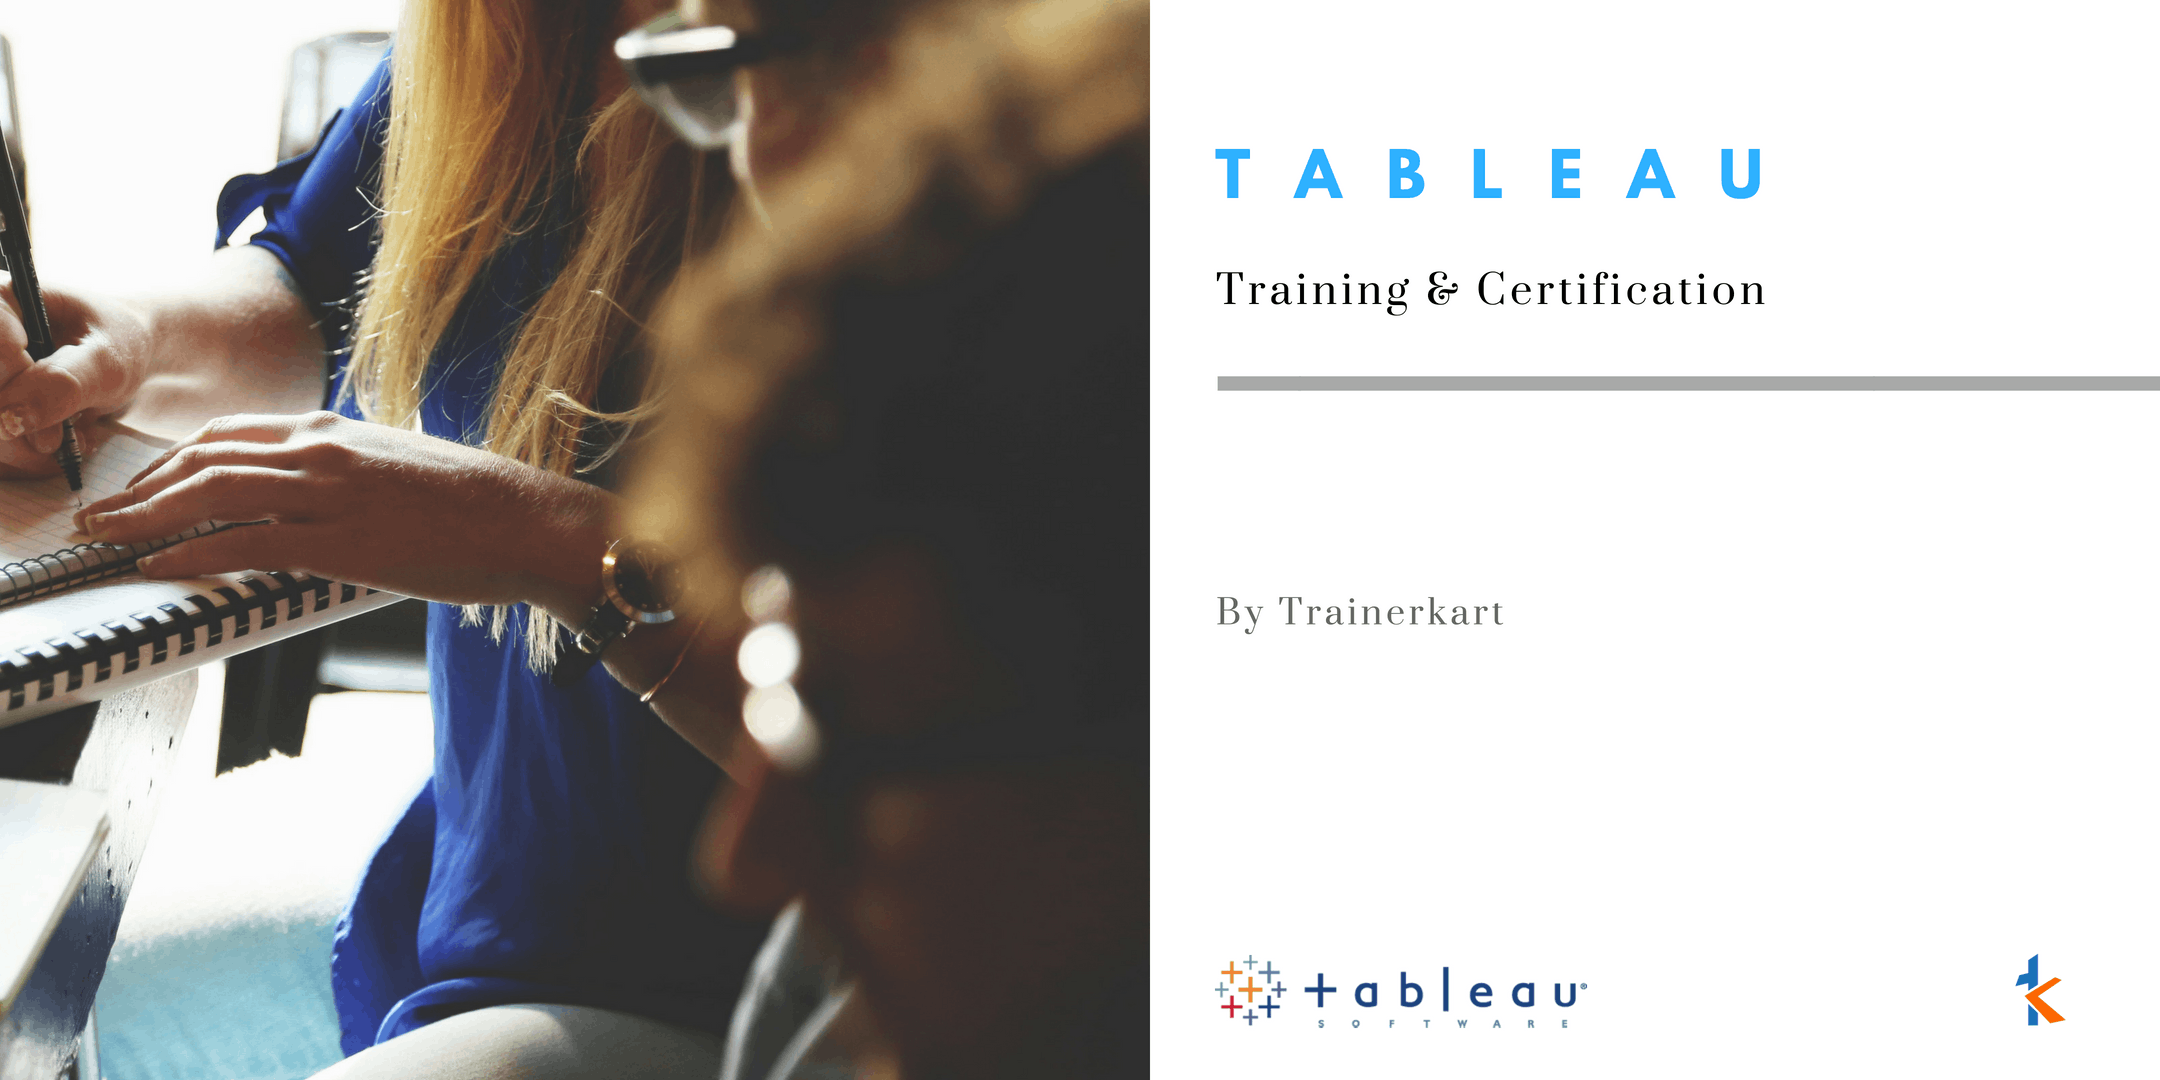 Tableau Training & Certification in Birmingha